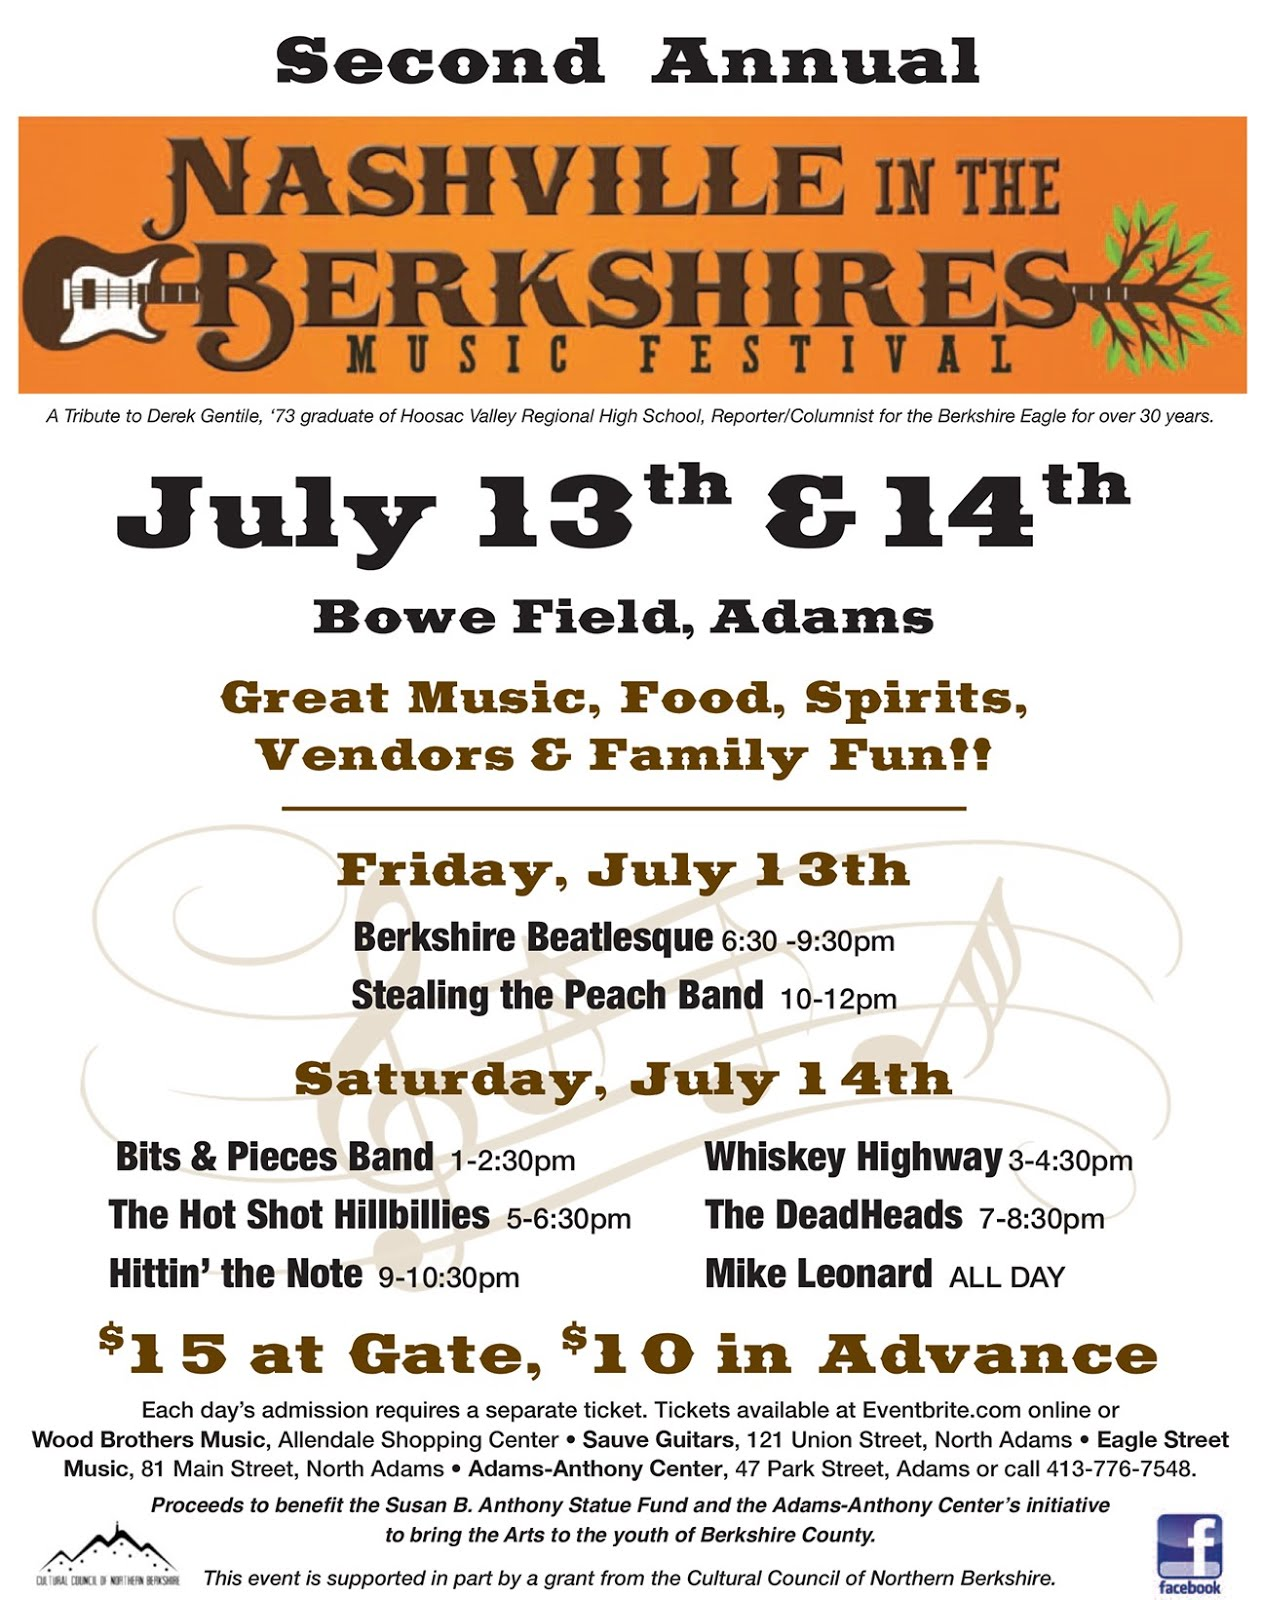 Great Music Coming To The Berkshires!